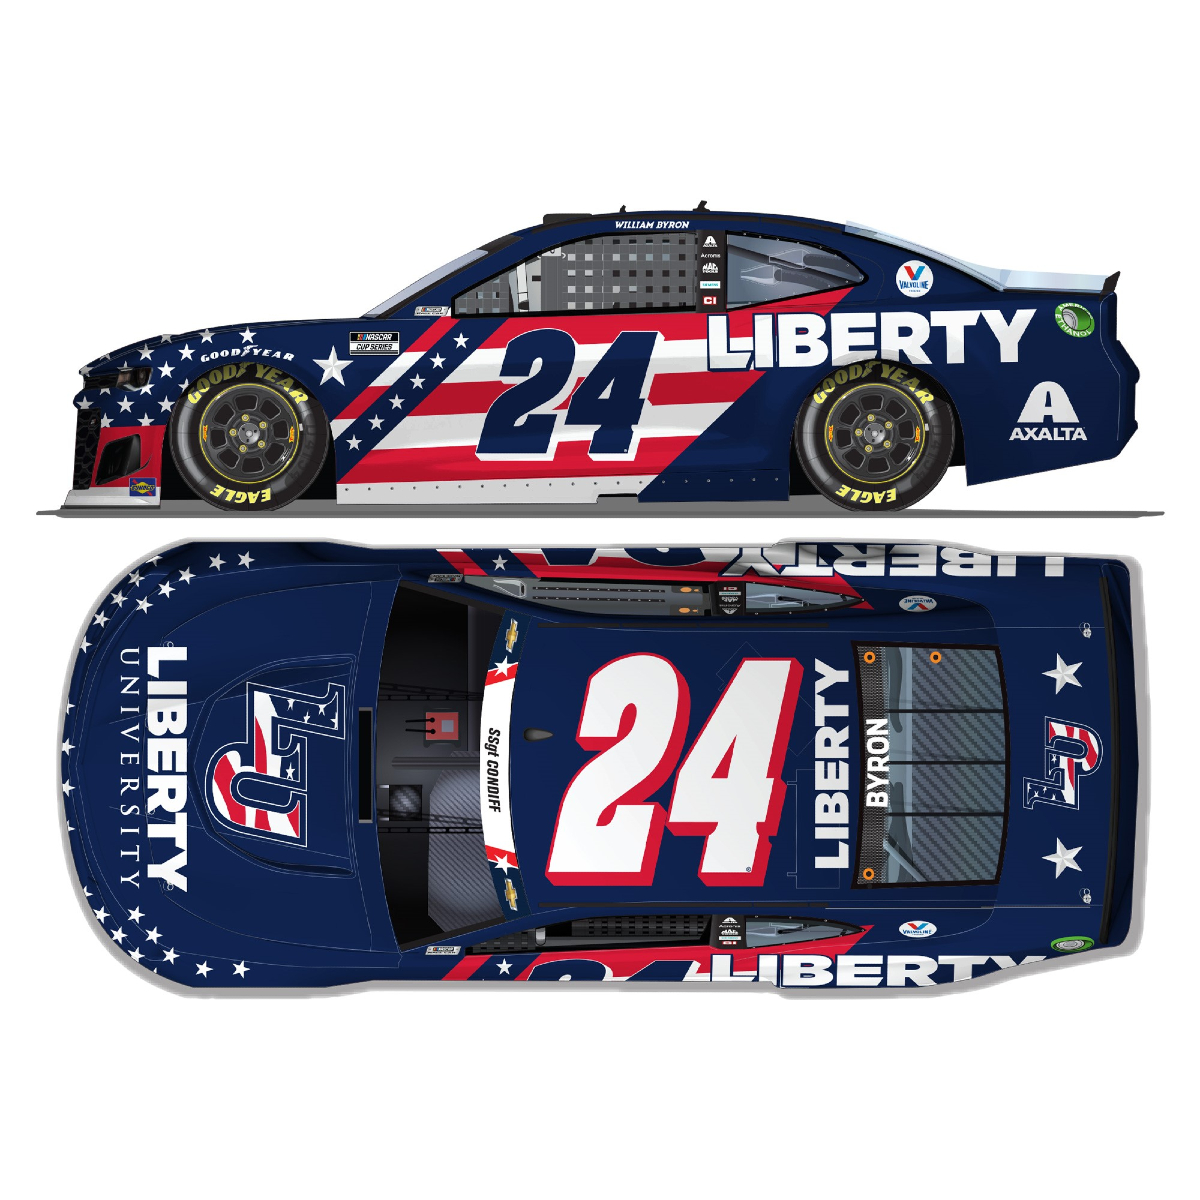 Autographed William Byron Charlotte Speedway Liberty University 1:24 HO Die-Cast